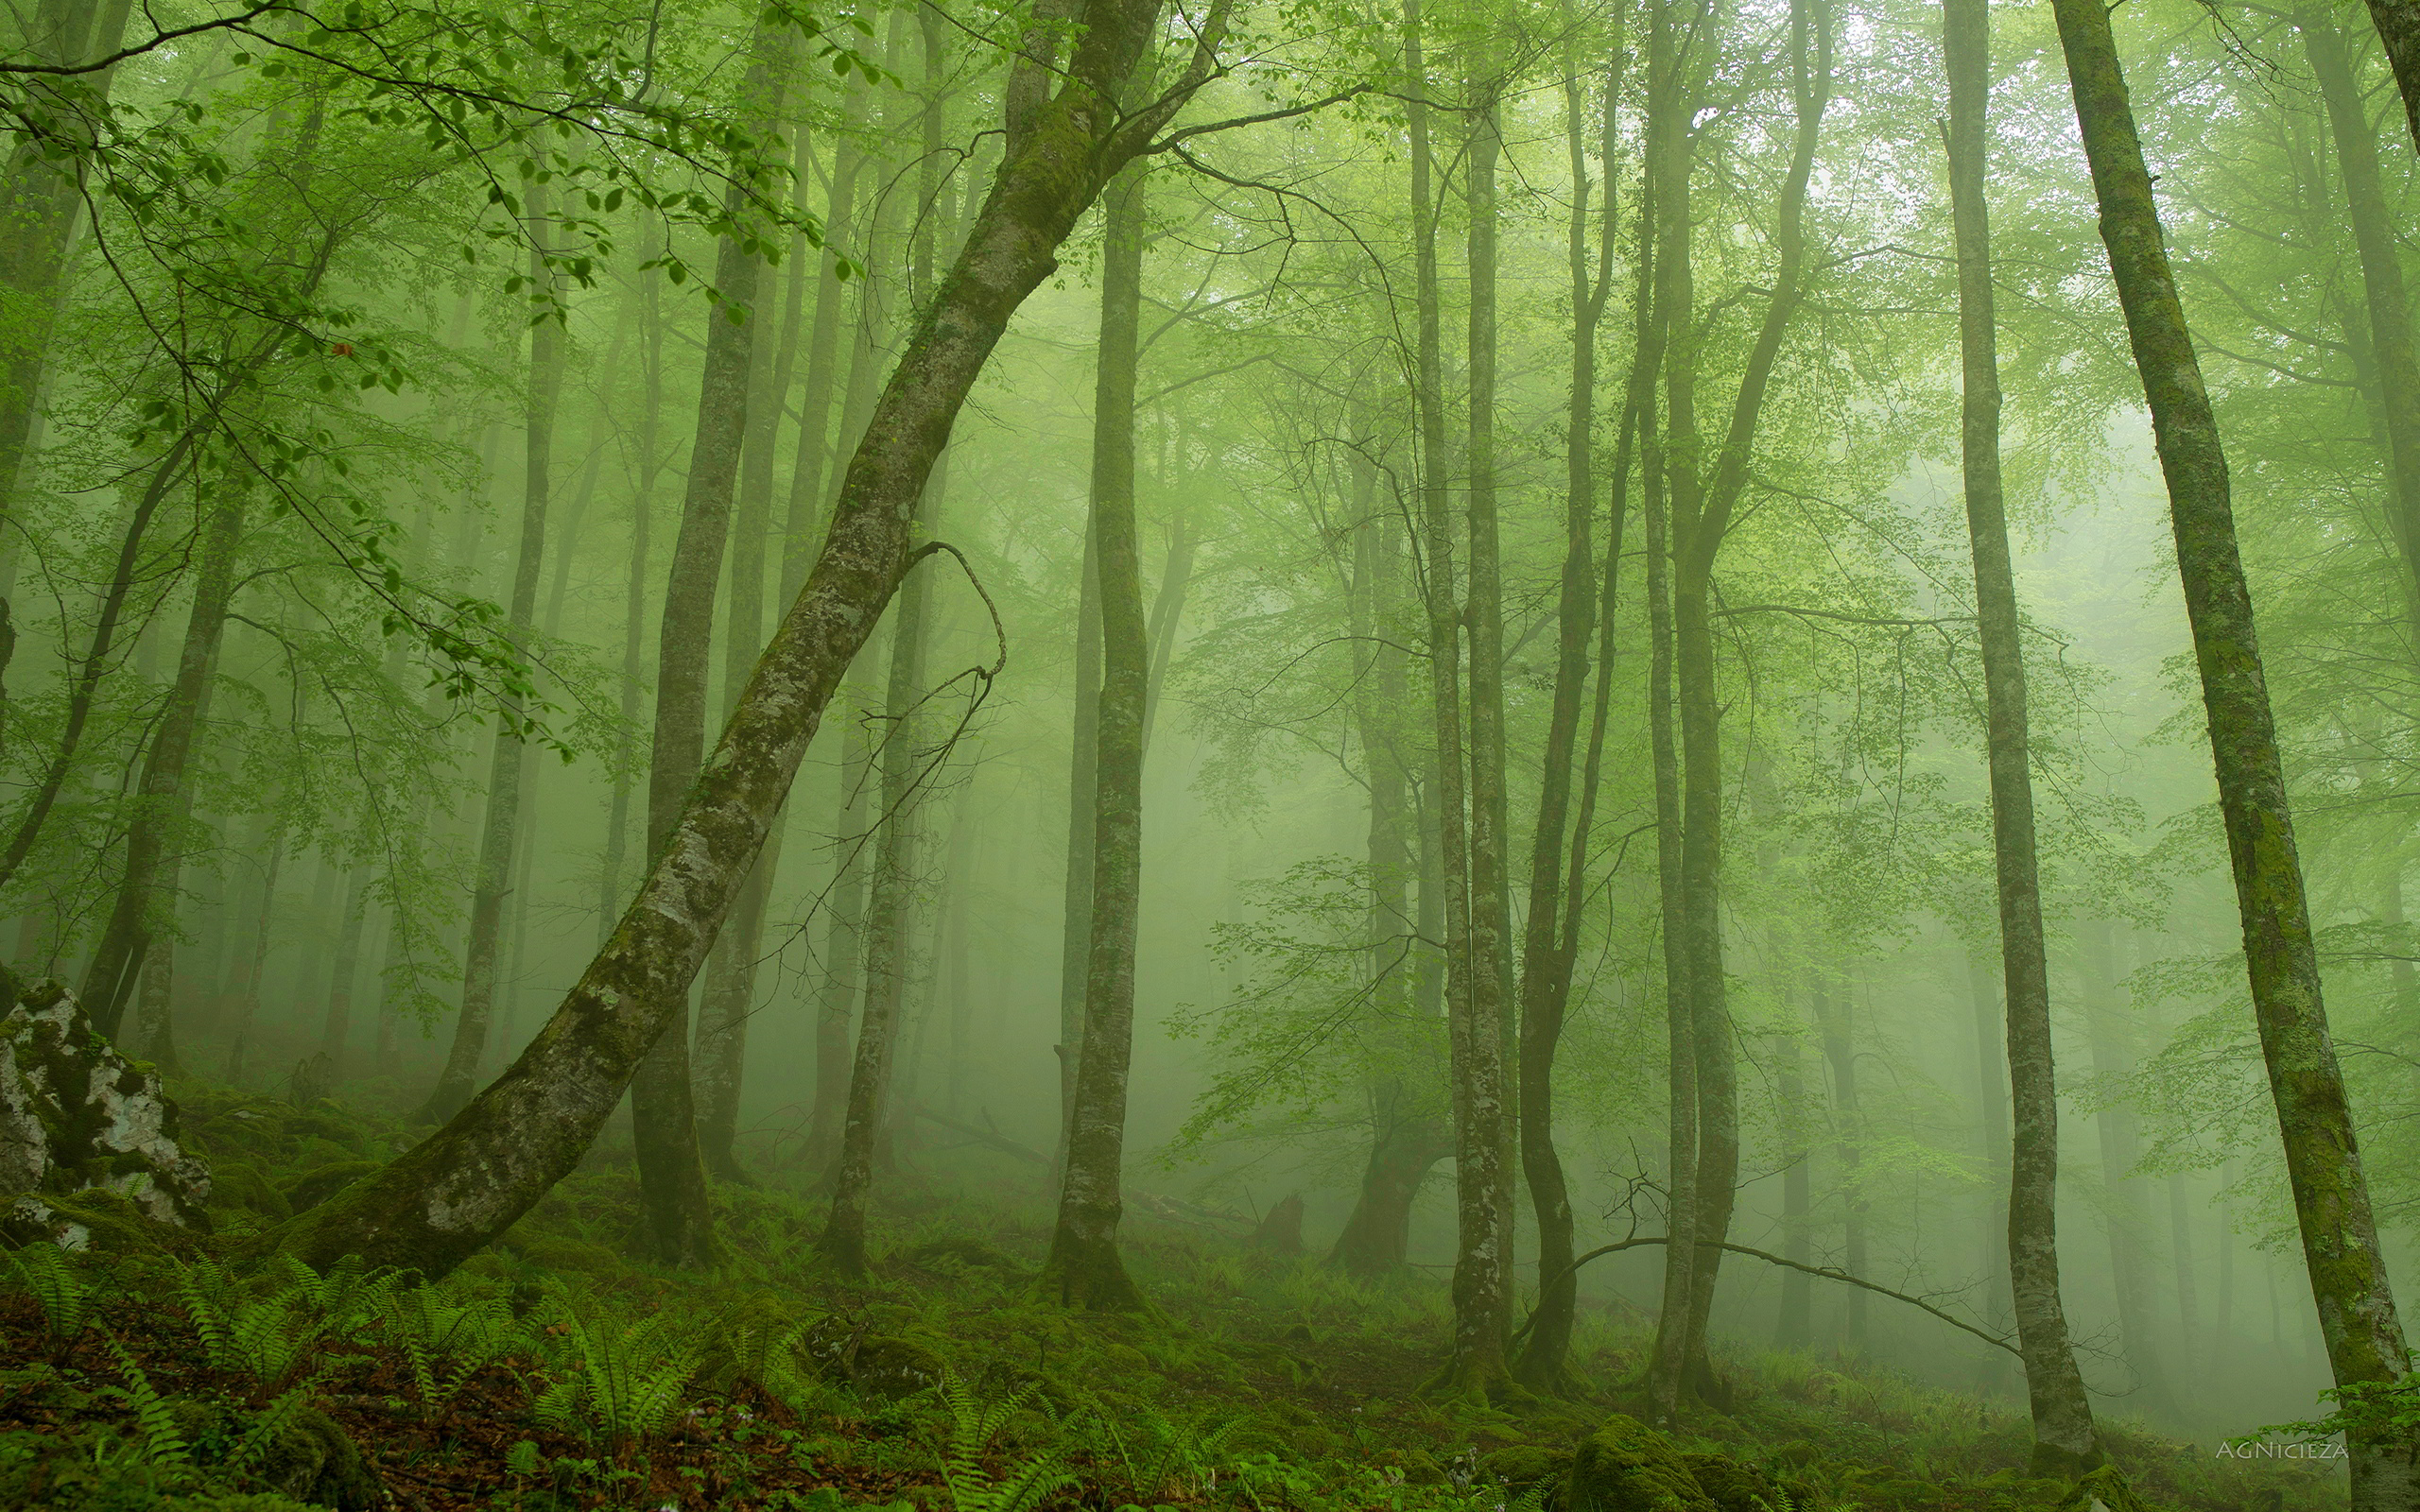 Foggy mystic forest